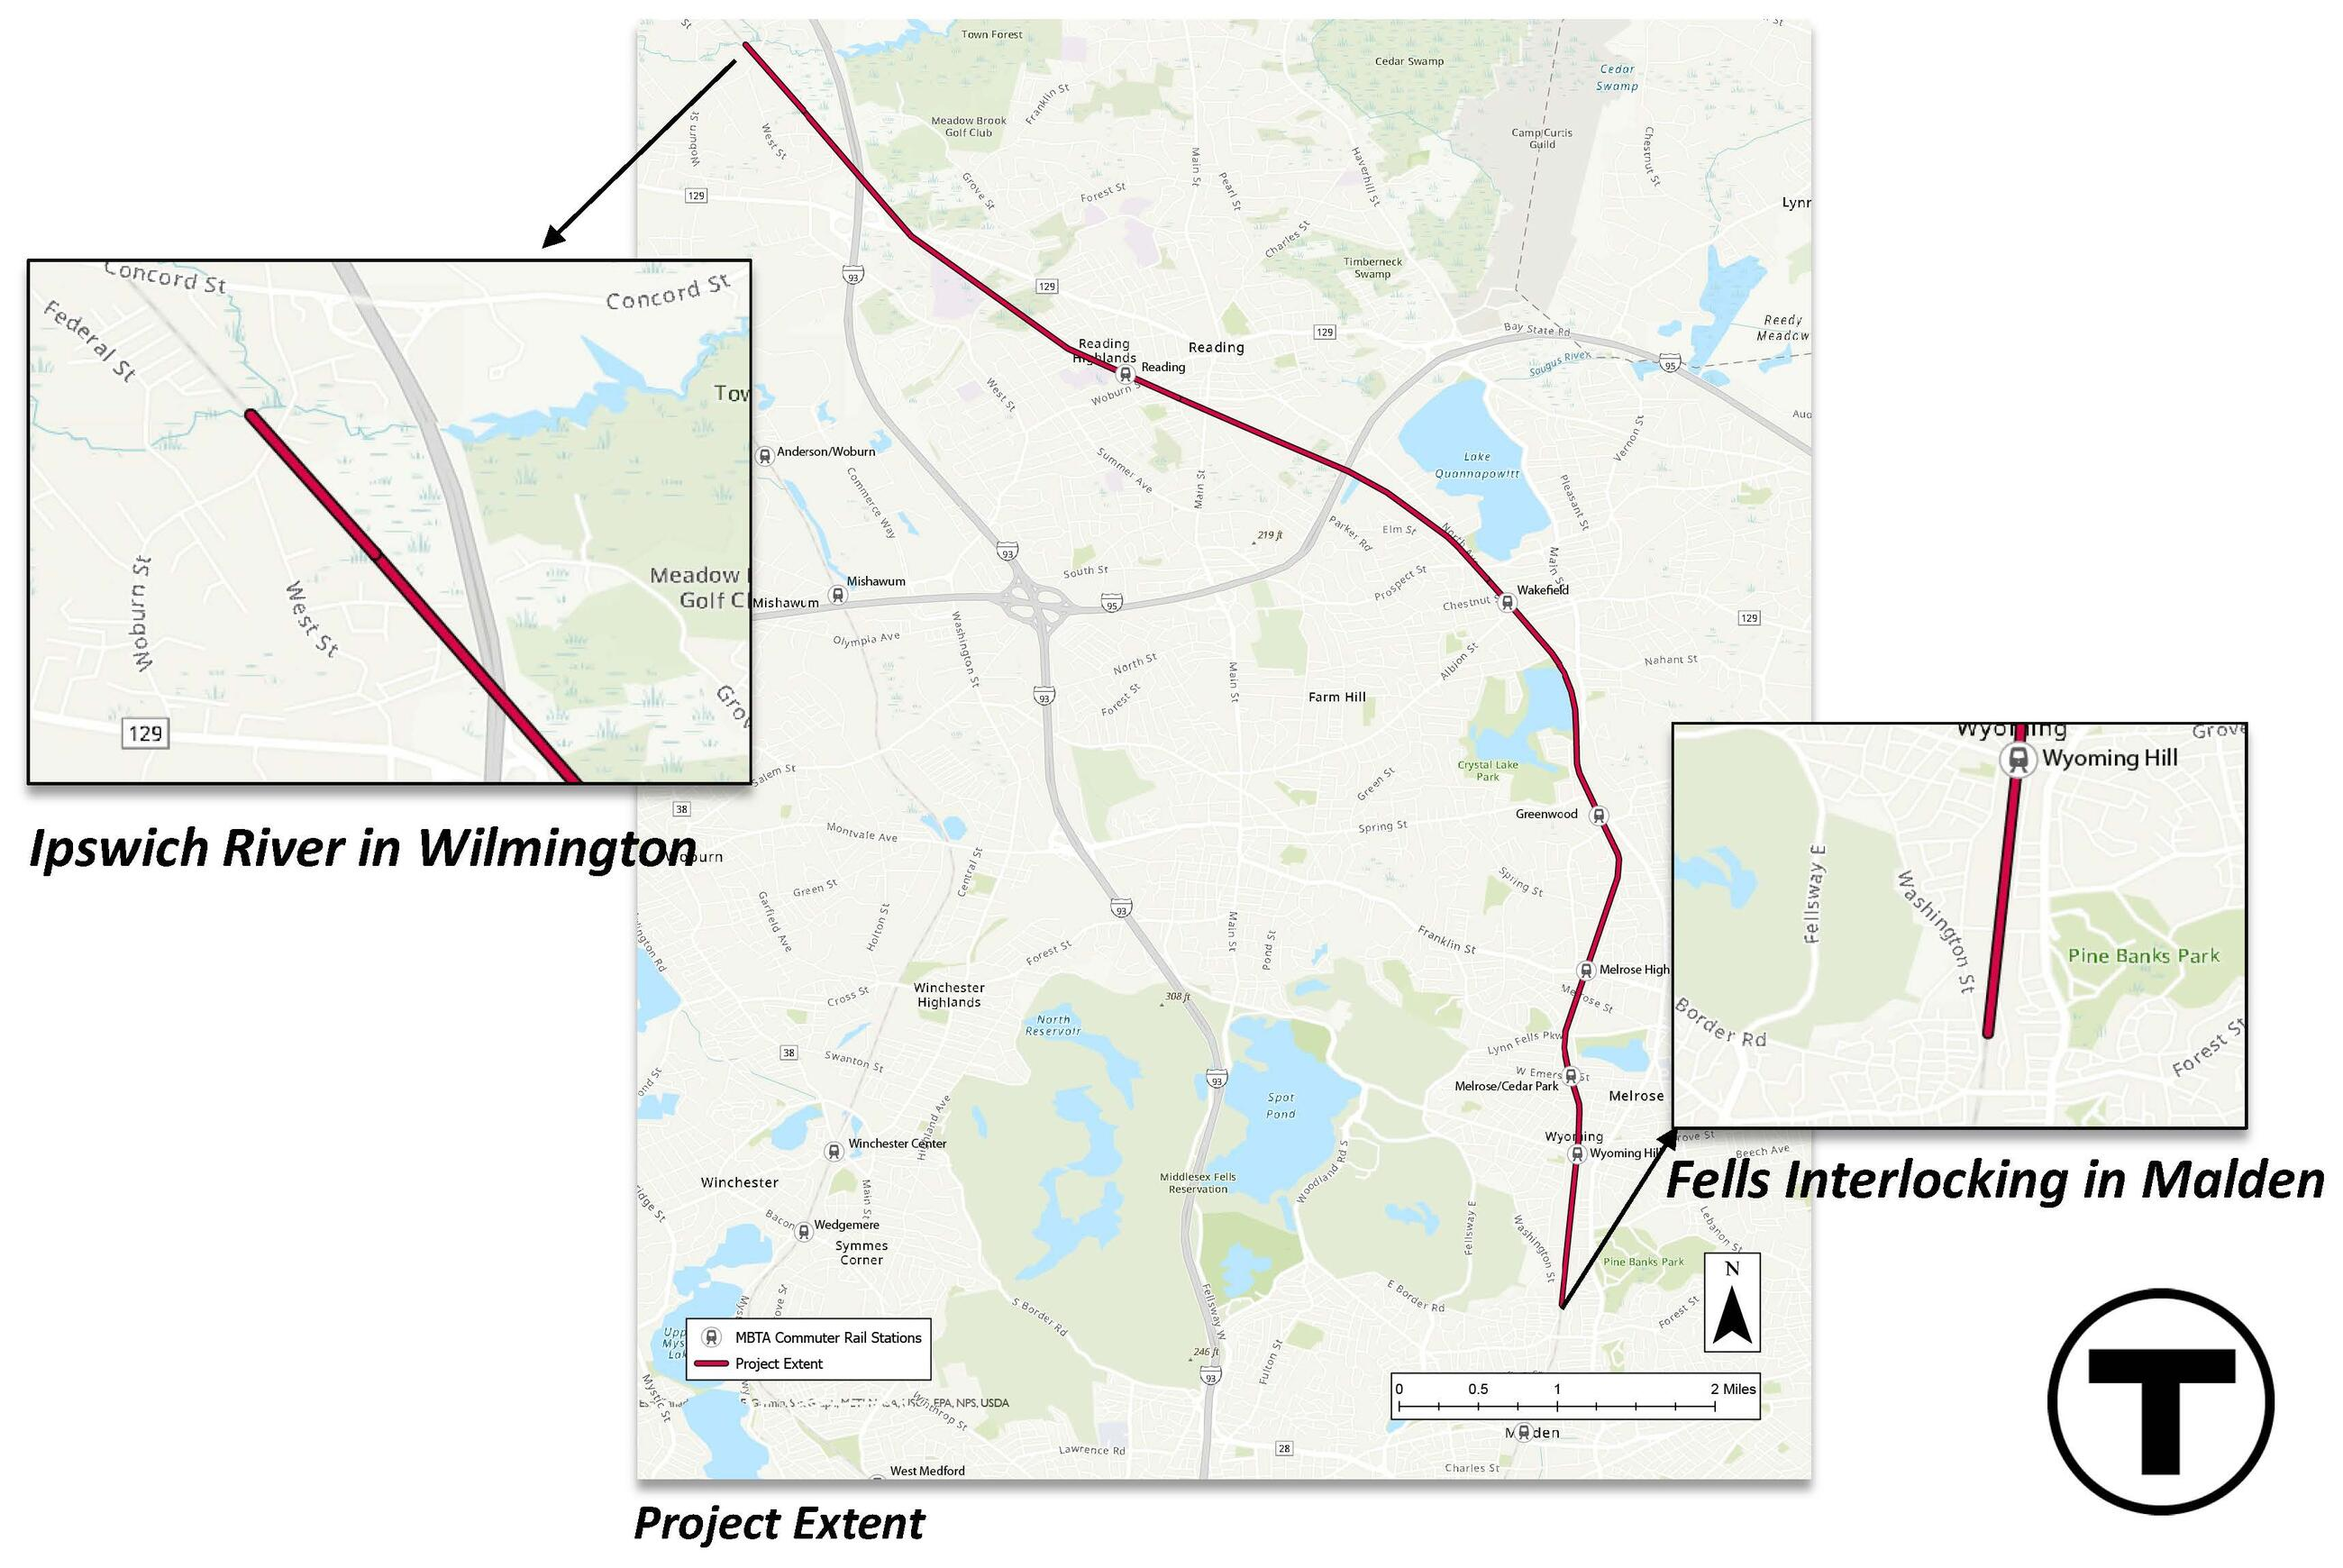 """A map labeled """"project extent"""" shows where work will take place from Wilmington in the northwest to Malden at the southeast. The section of rail to be replaced is in red. Close-ups of the northern end of the work labeled """"Ipswich River in Wilmington"""" and the southern end labeled """"Fells Interlocking in Malden"""" appear at left and right. The segment of rail line to be replaced goes northwest from Malden through Melrose, Wakefield, and Reading and ends in Wilmington."""